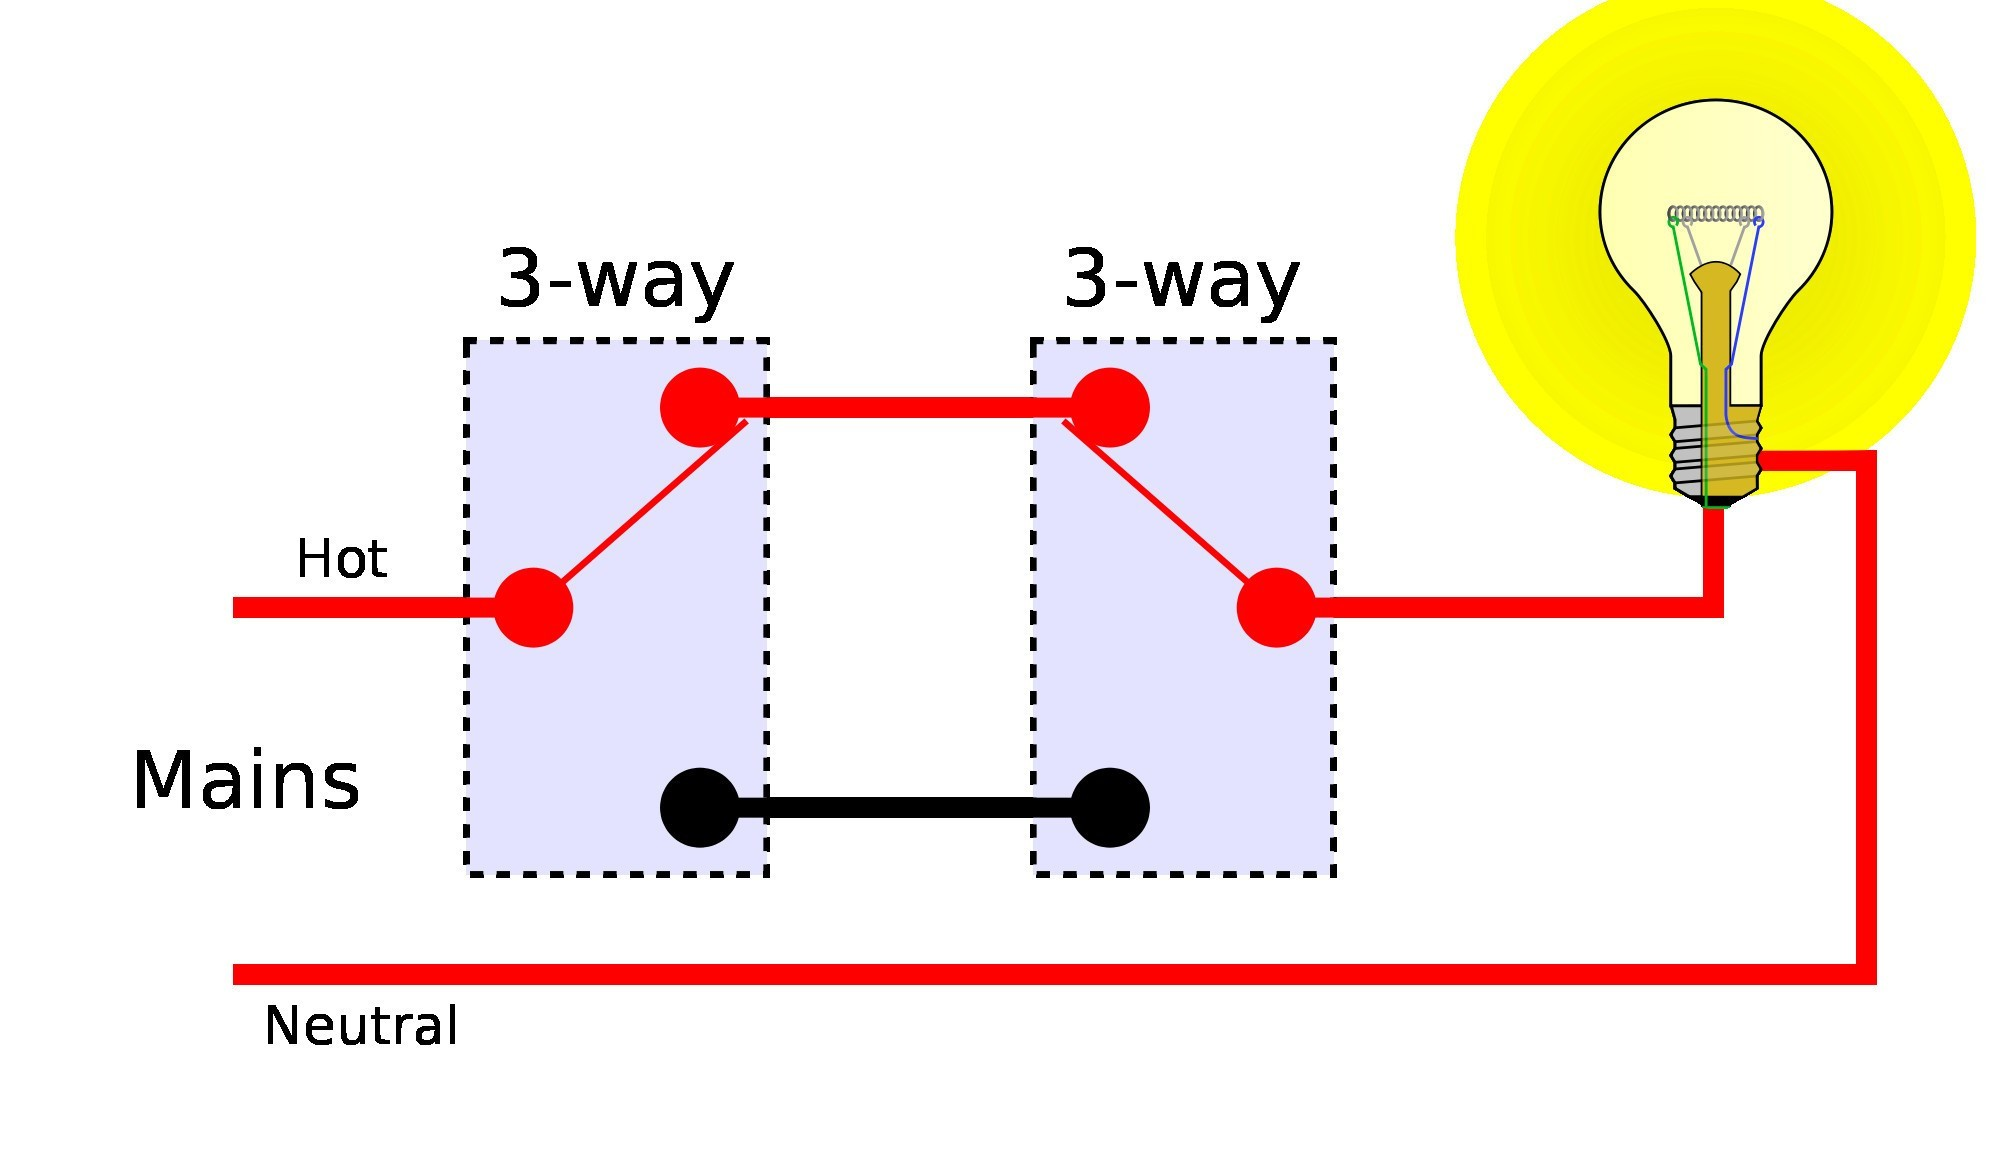 Wiring Diagram For 3 Way Switches Multiple Lights Inspirationa Wiring Diagram For Light With Two Switches Save Two Way Switch